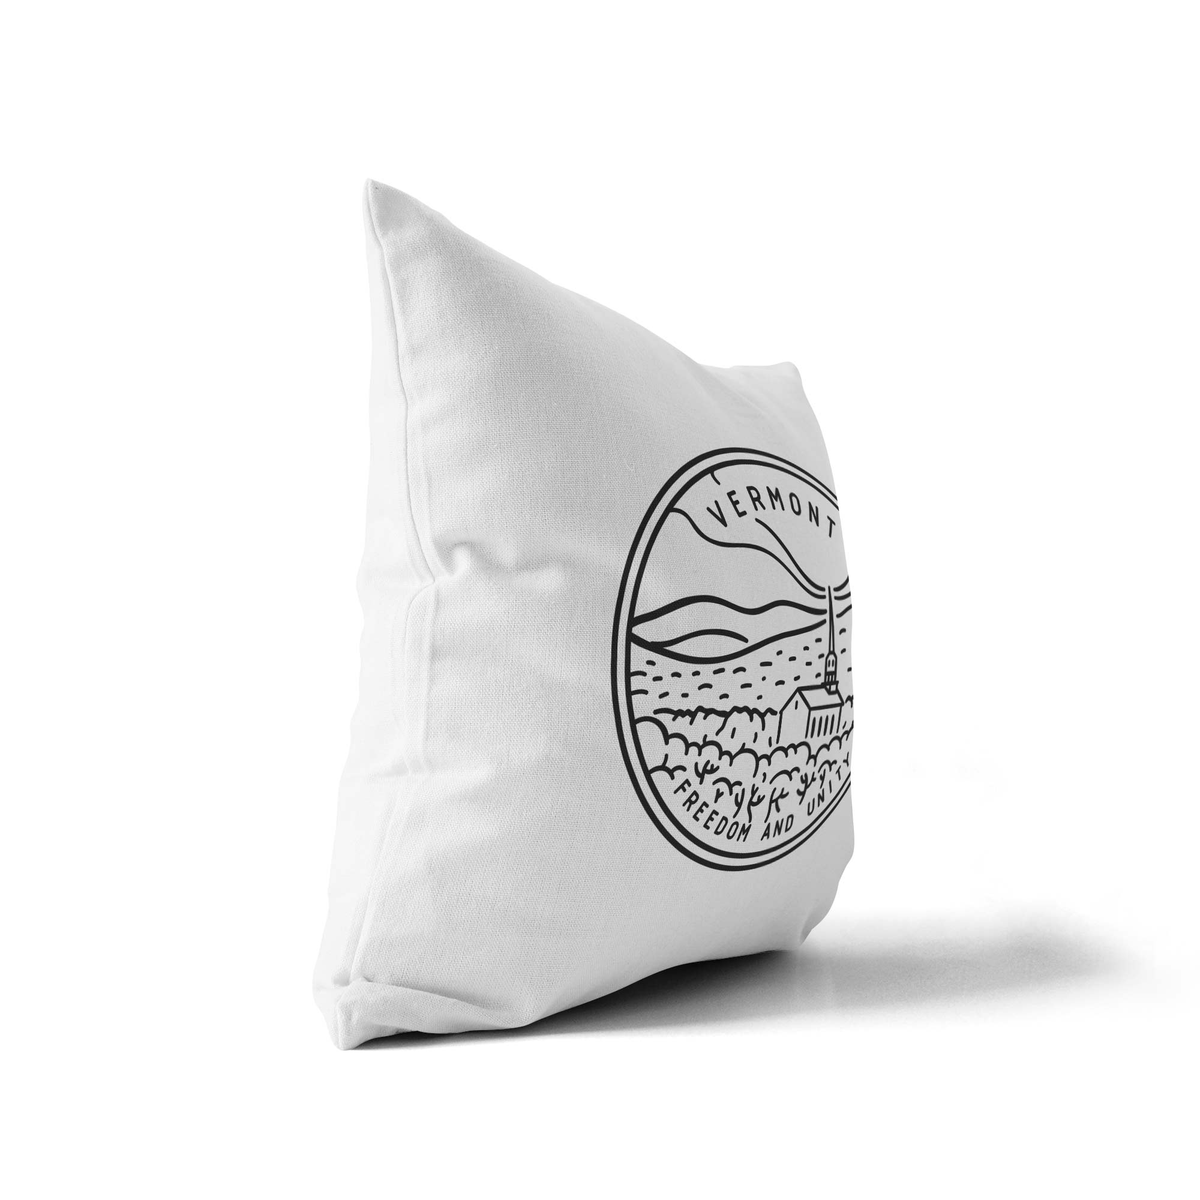 Vermont State Crest Throw Pillow